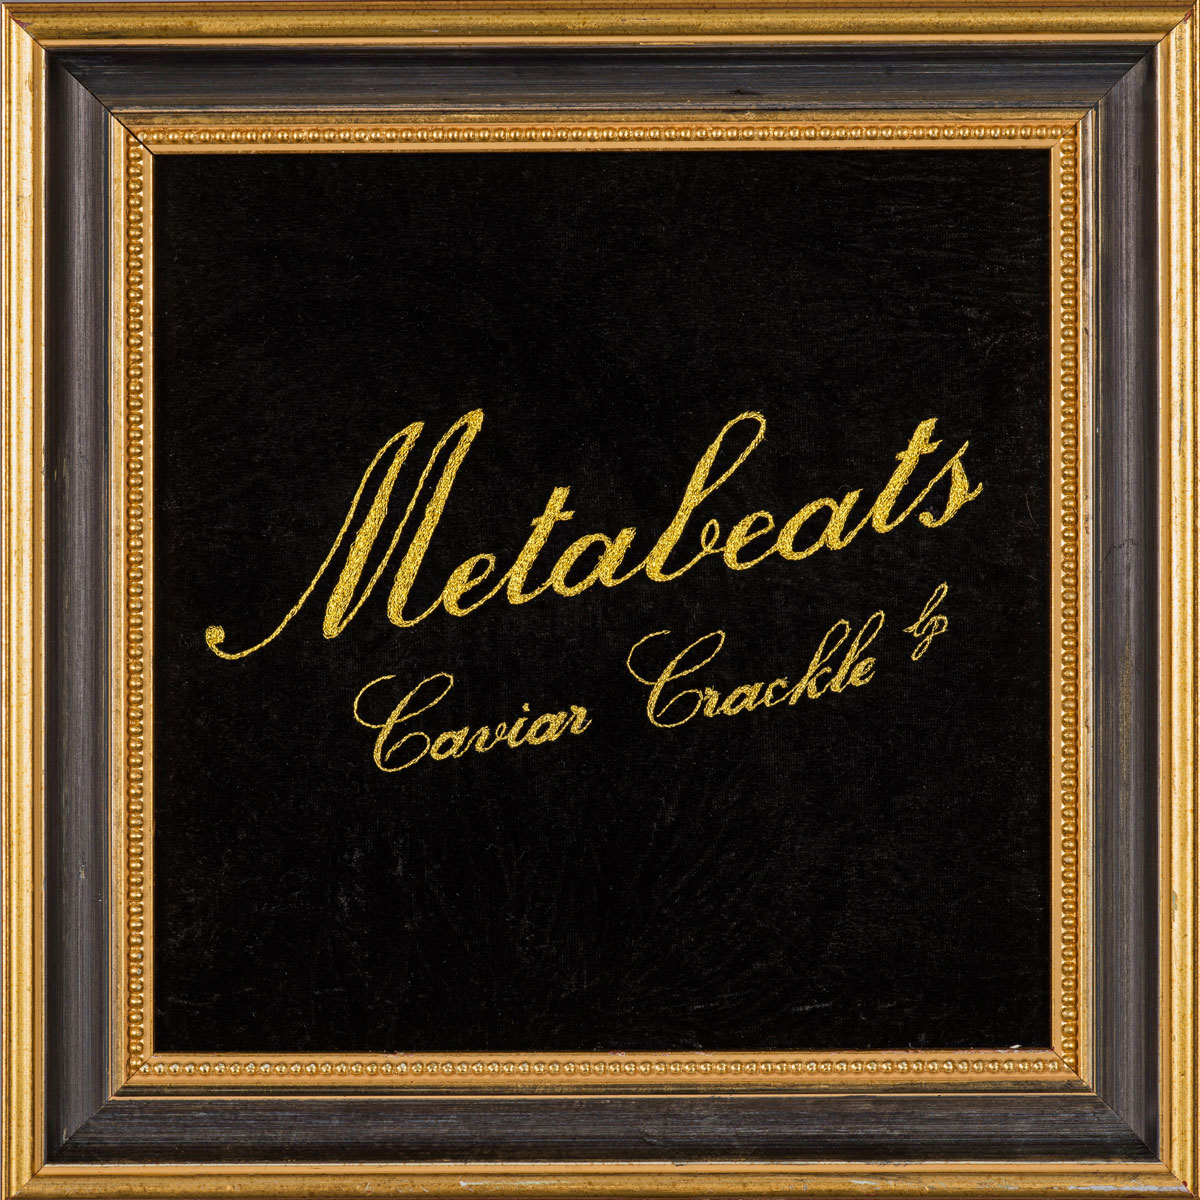 Metabeats - Caviar Crackle LP